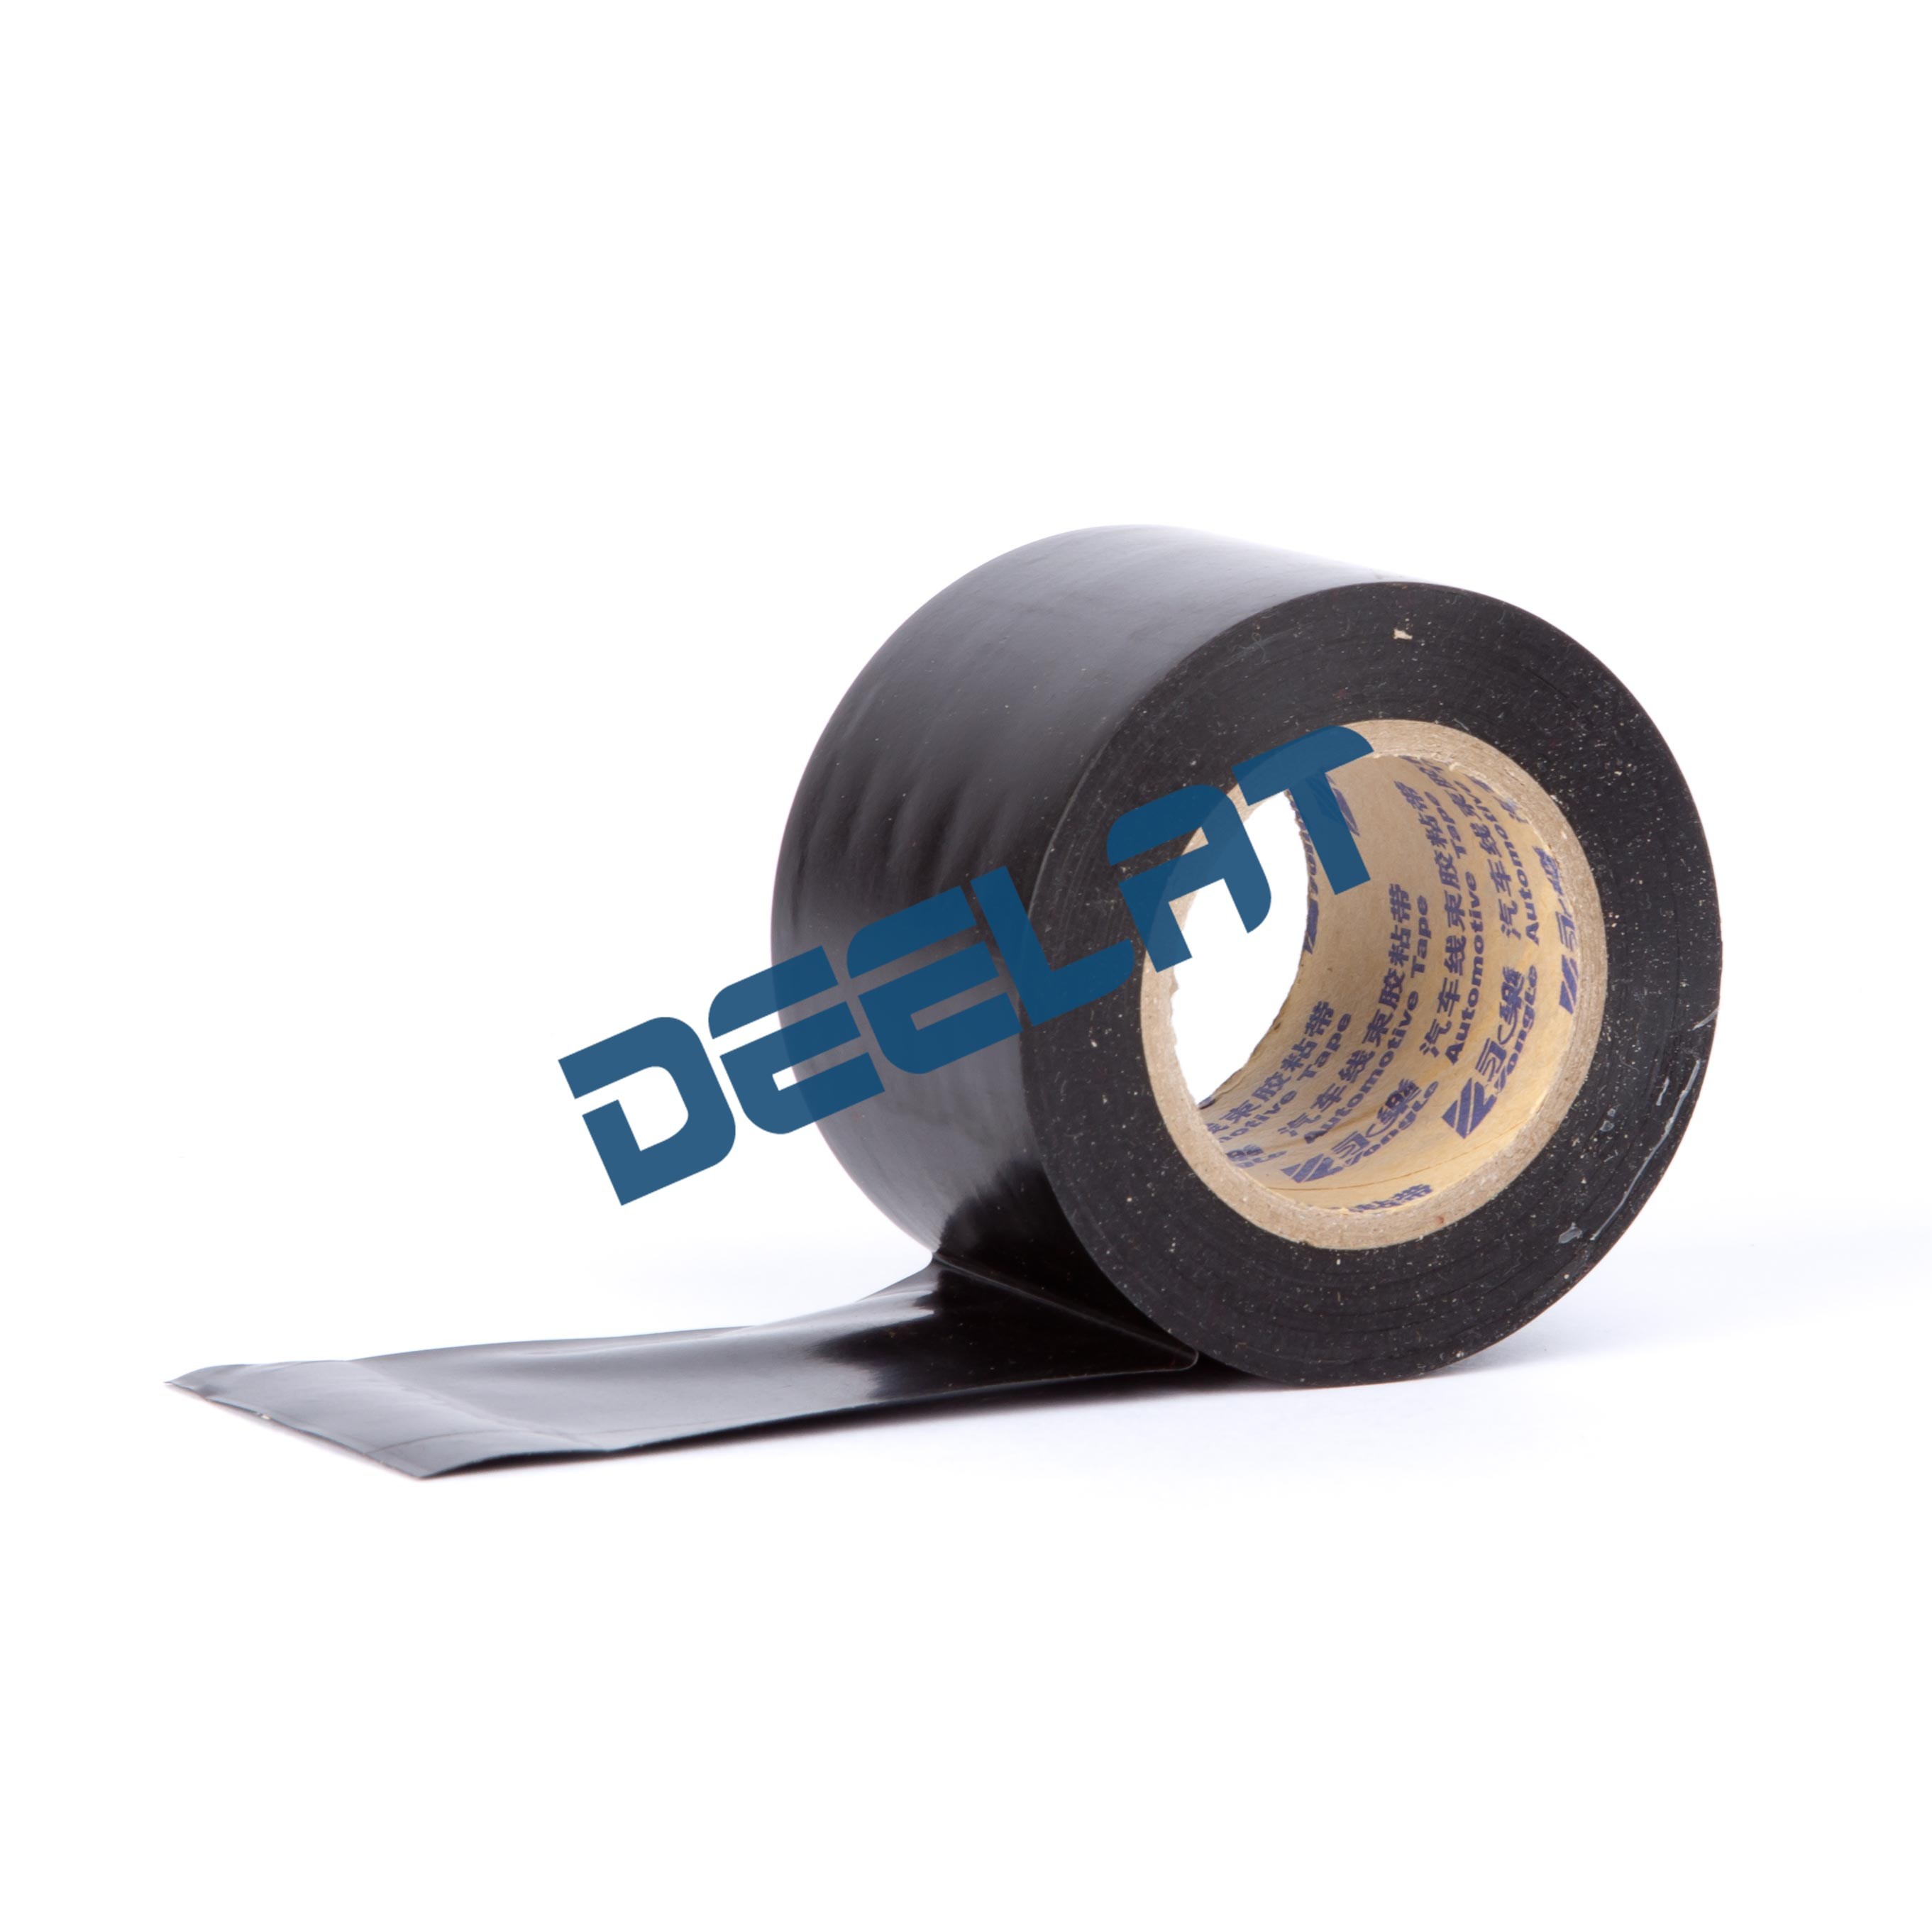 deelat blog automotive wire harness tape uses types and applications automotive wire harness tape